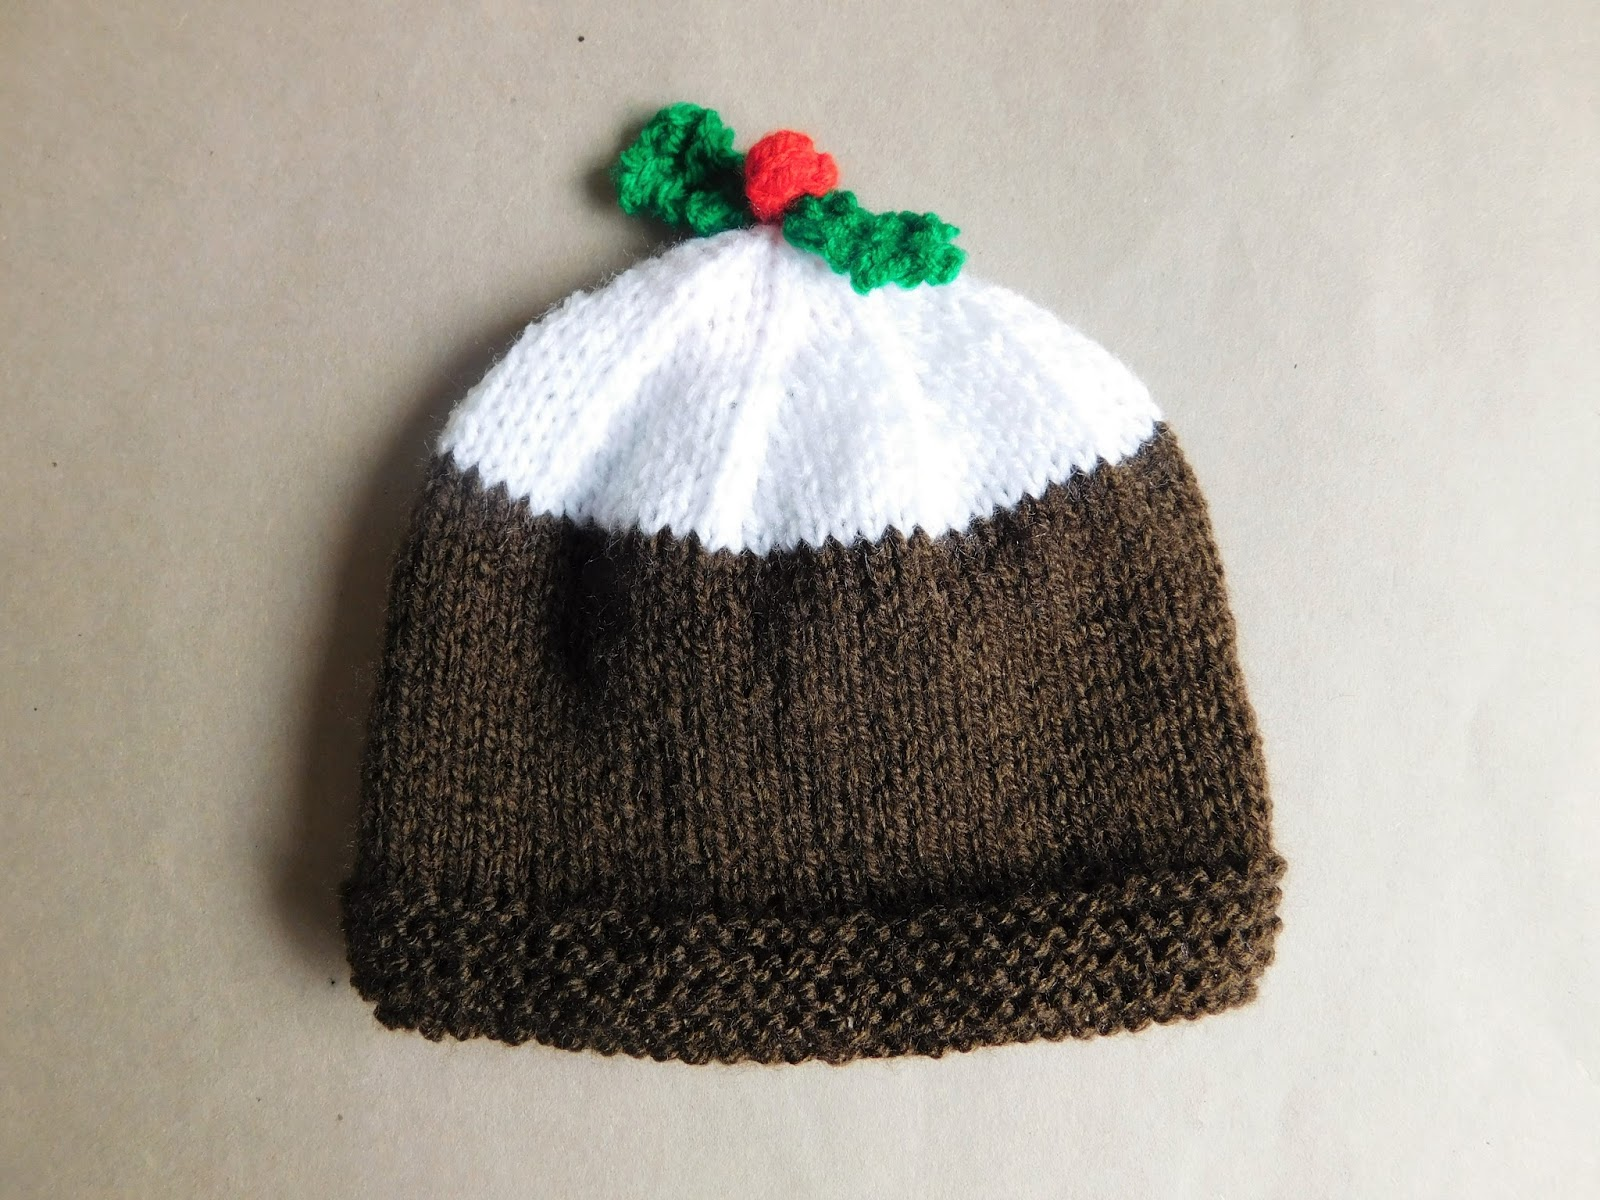 Free Knitting Pattern Xmas Pudding : mariannas lazy daisy days: Christmas Pudding Baby Hat